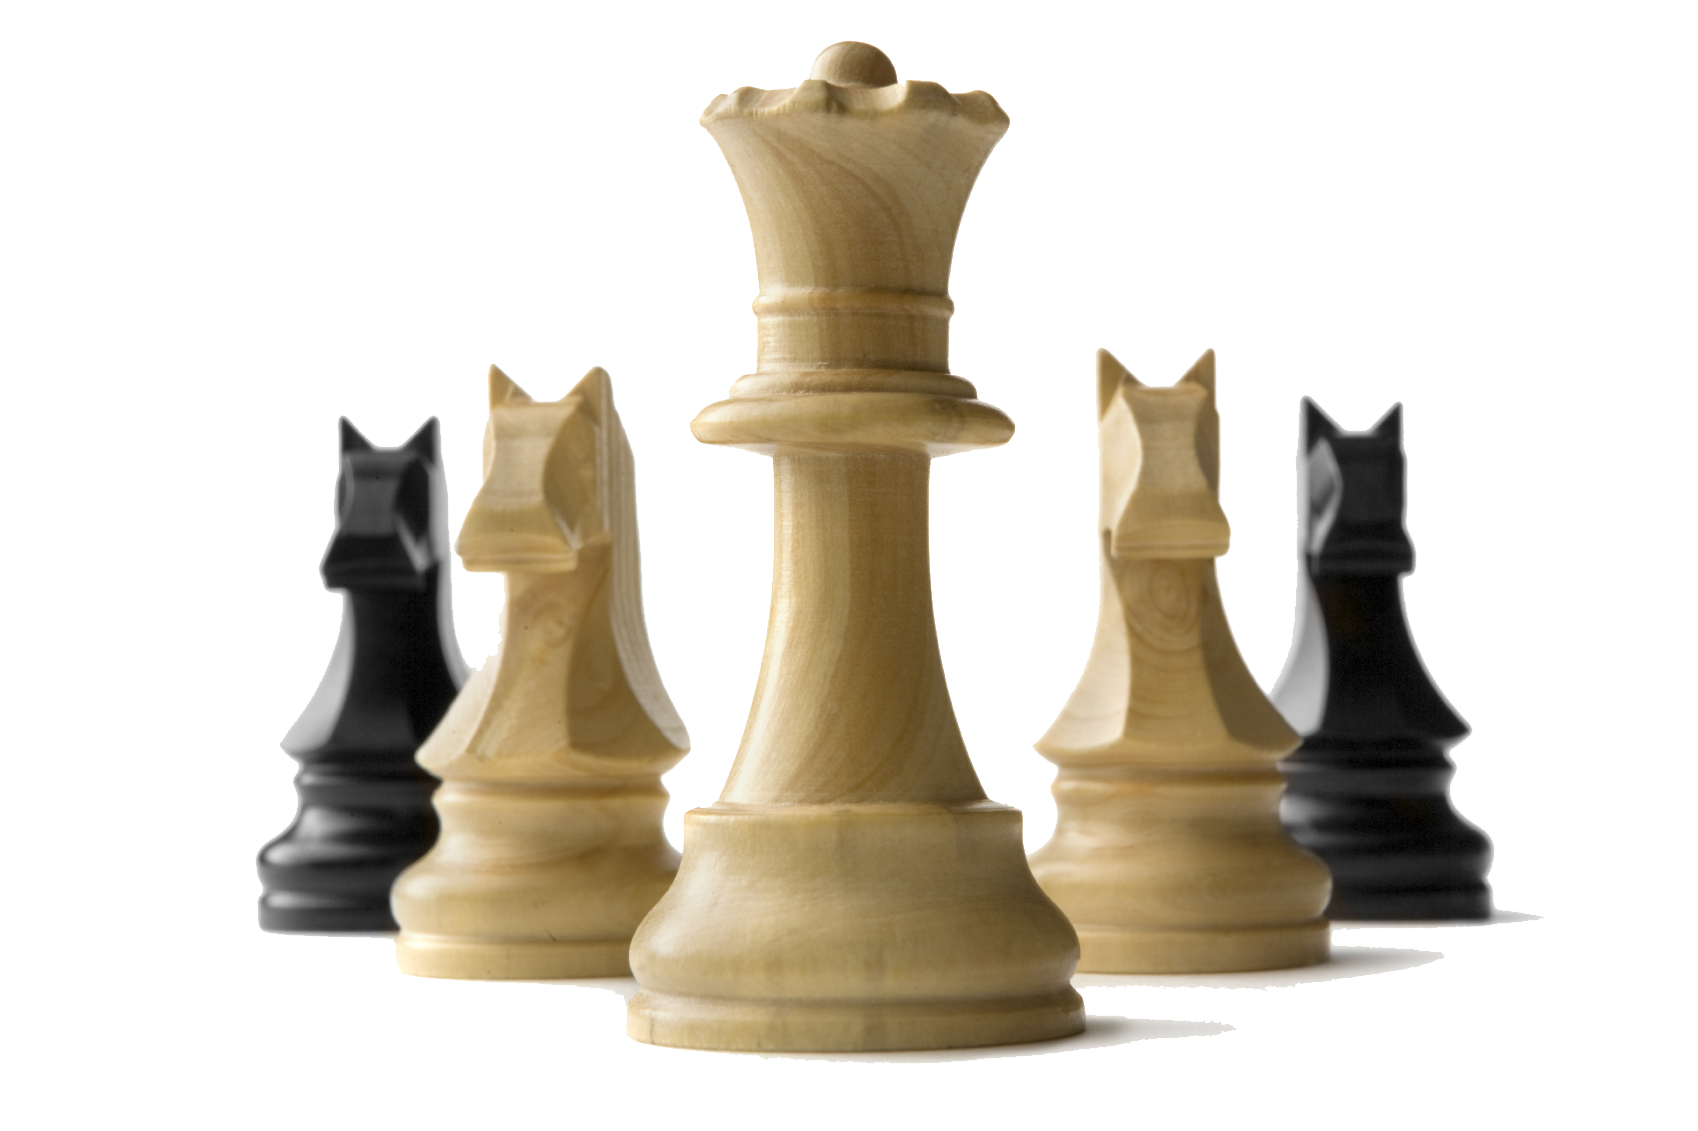 Chess Free Png Image PNG Image - Chess PNG